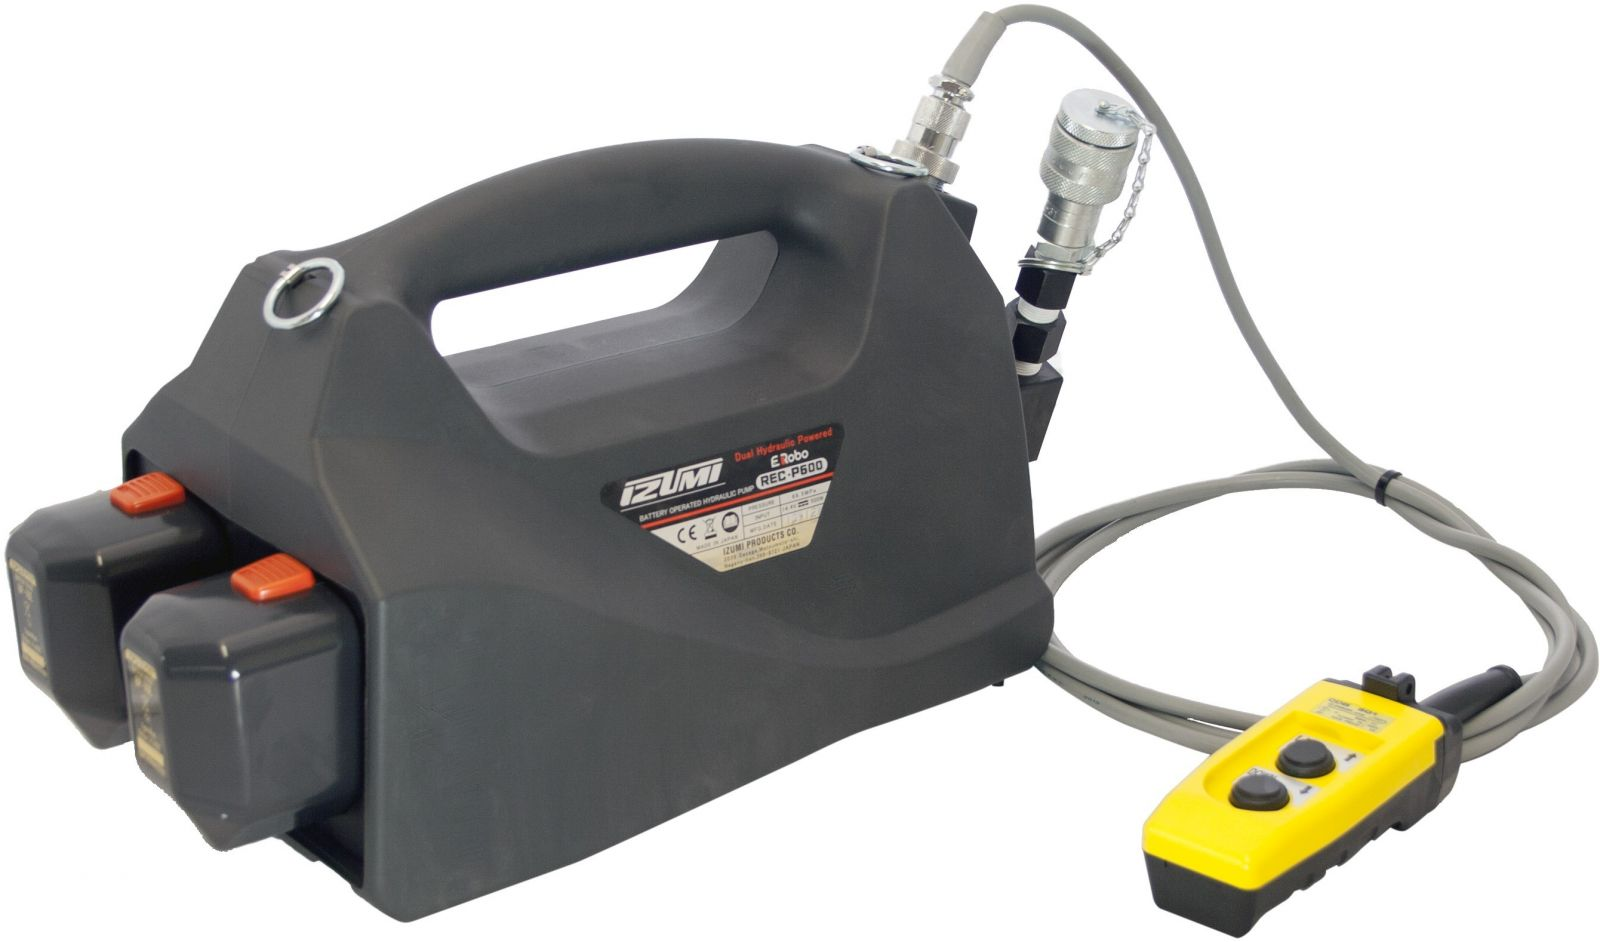 https://vhcorp.com.vn/upload/images/IZUMI/Battery_Operated_Tools_Battery_Operated_Pump_REC_P600.jpg